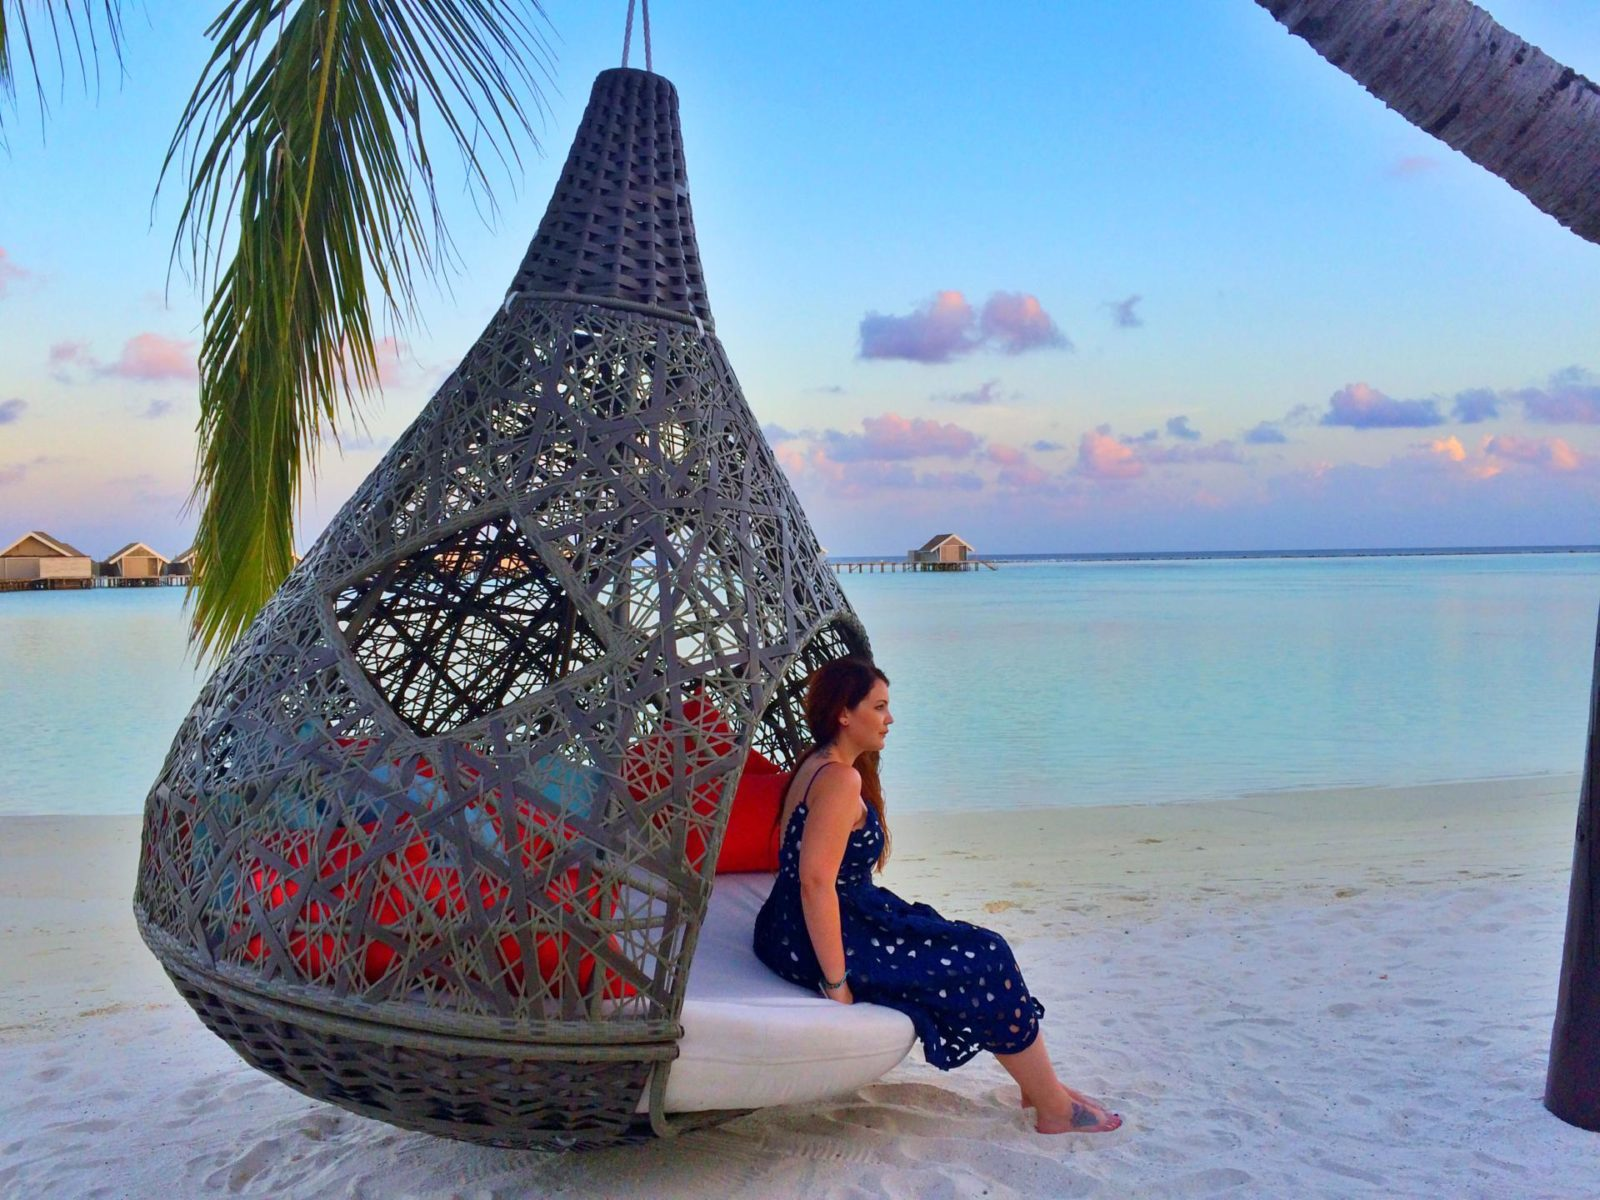 8 Photos That Will Make You Want to Visit the Maldives